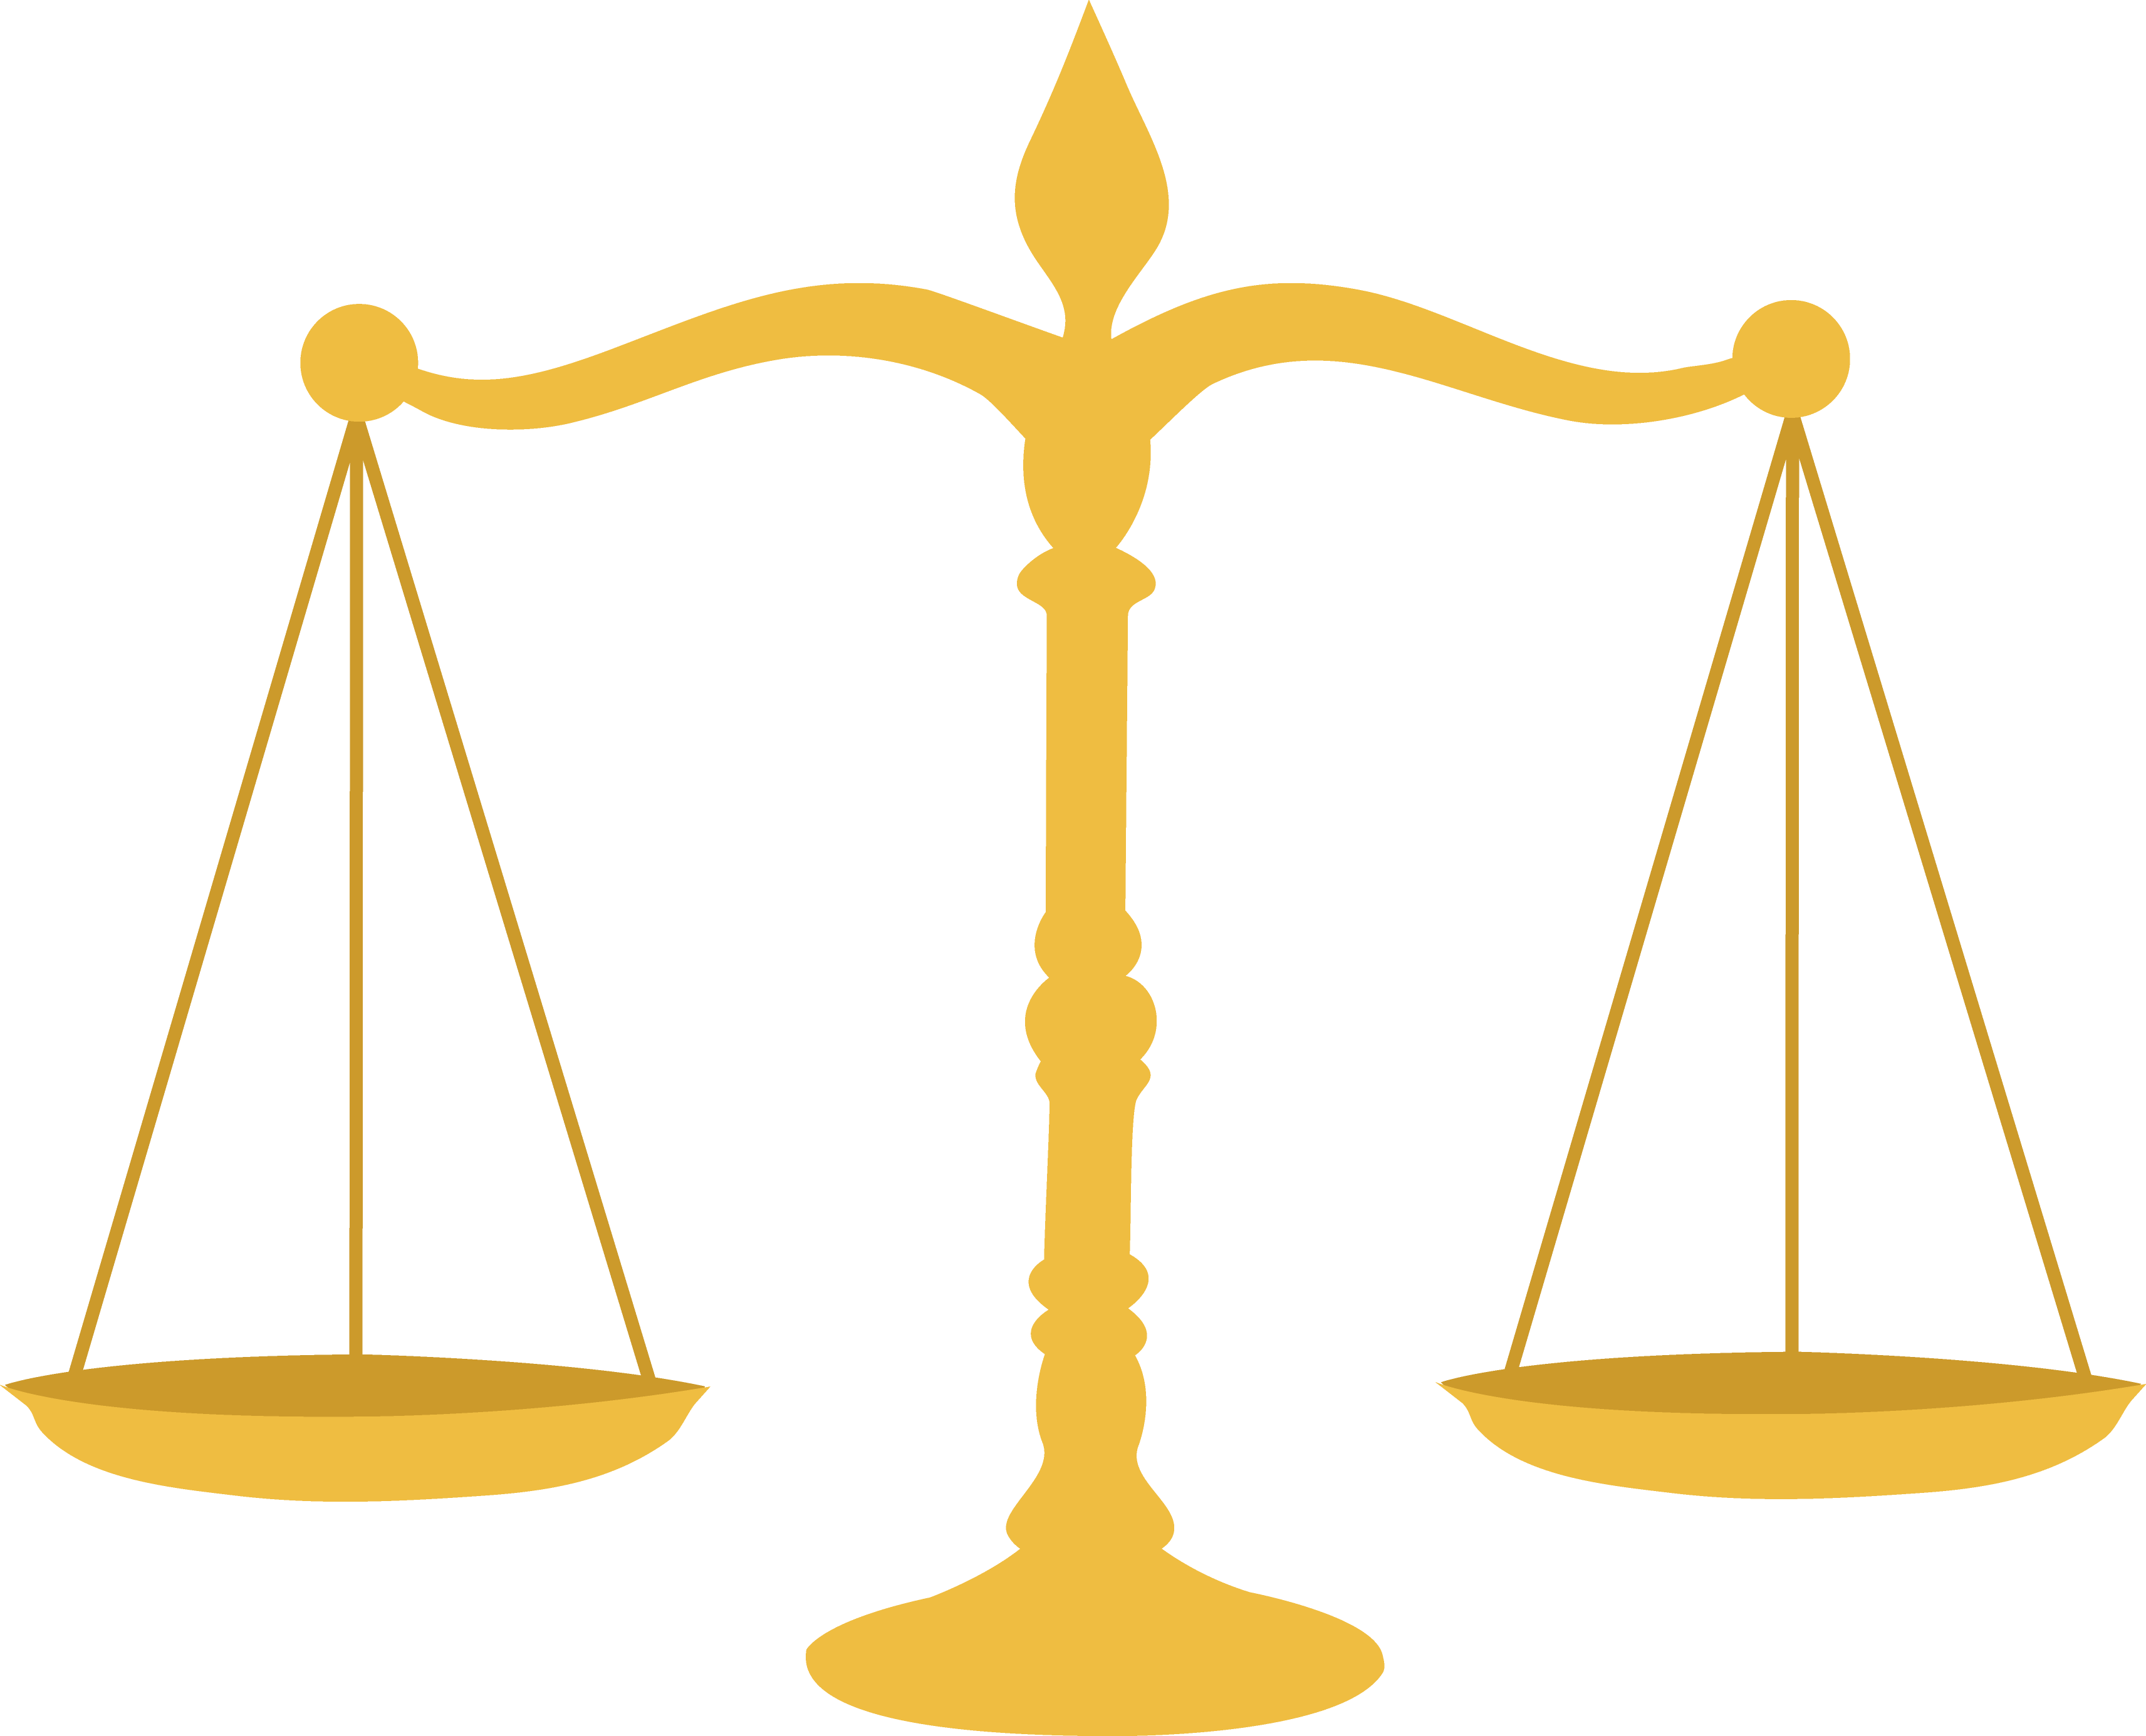 A drawing of a gold legal scale.